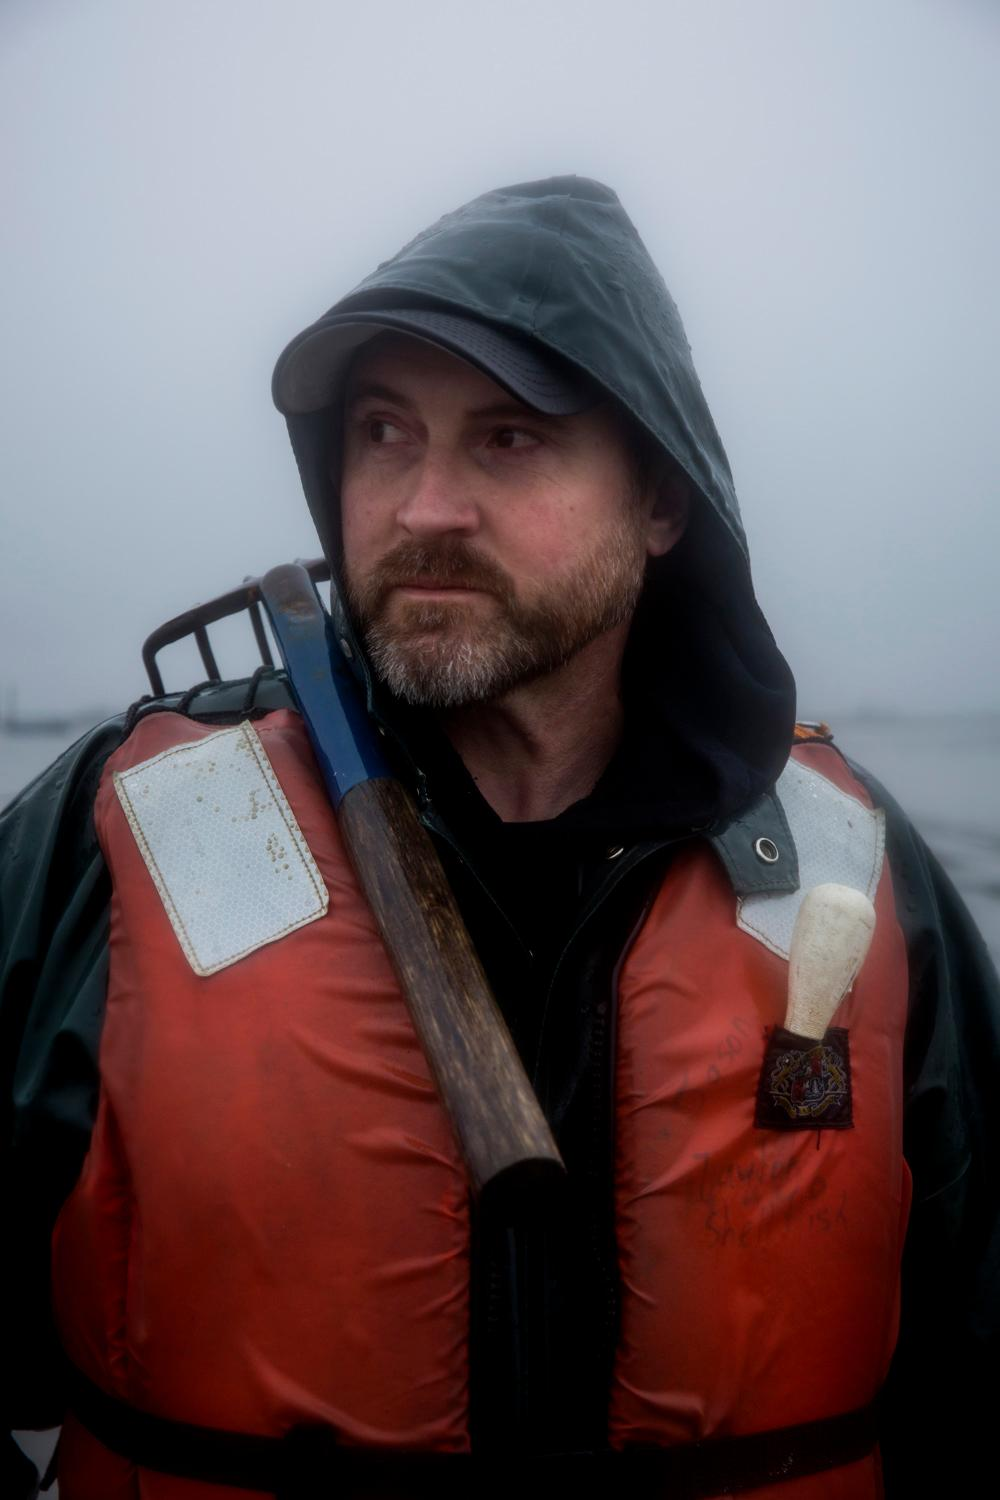 Jason Ragan, director of clam and oyster farming at Taylor Shellfish, poses for a portait out on their farms in Samish Bay, Thursday, March 22, 2018, near Bellingham. (Sy Bean / Seattle Refined)